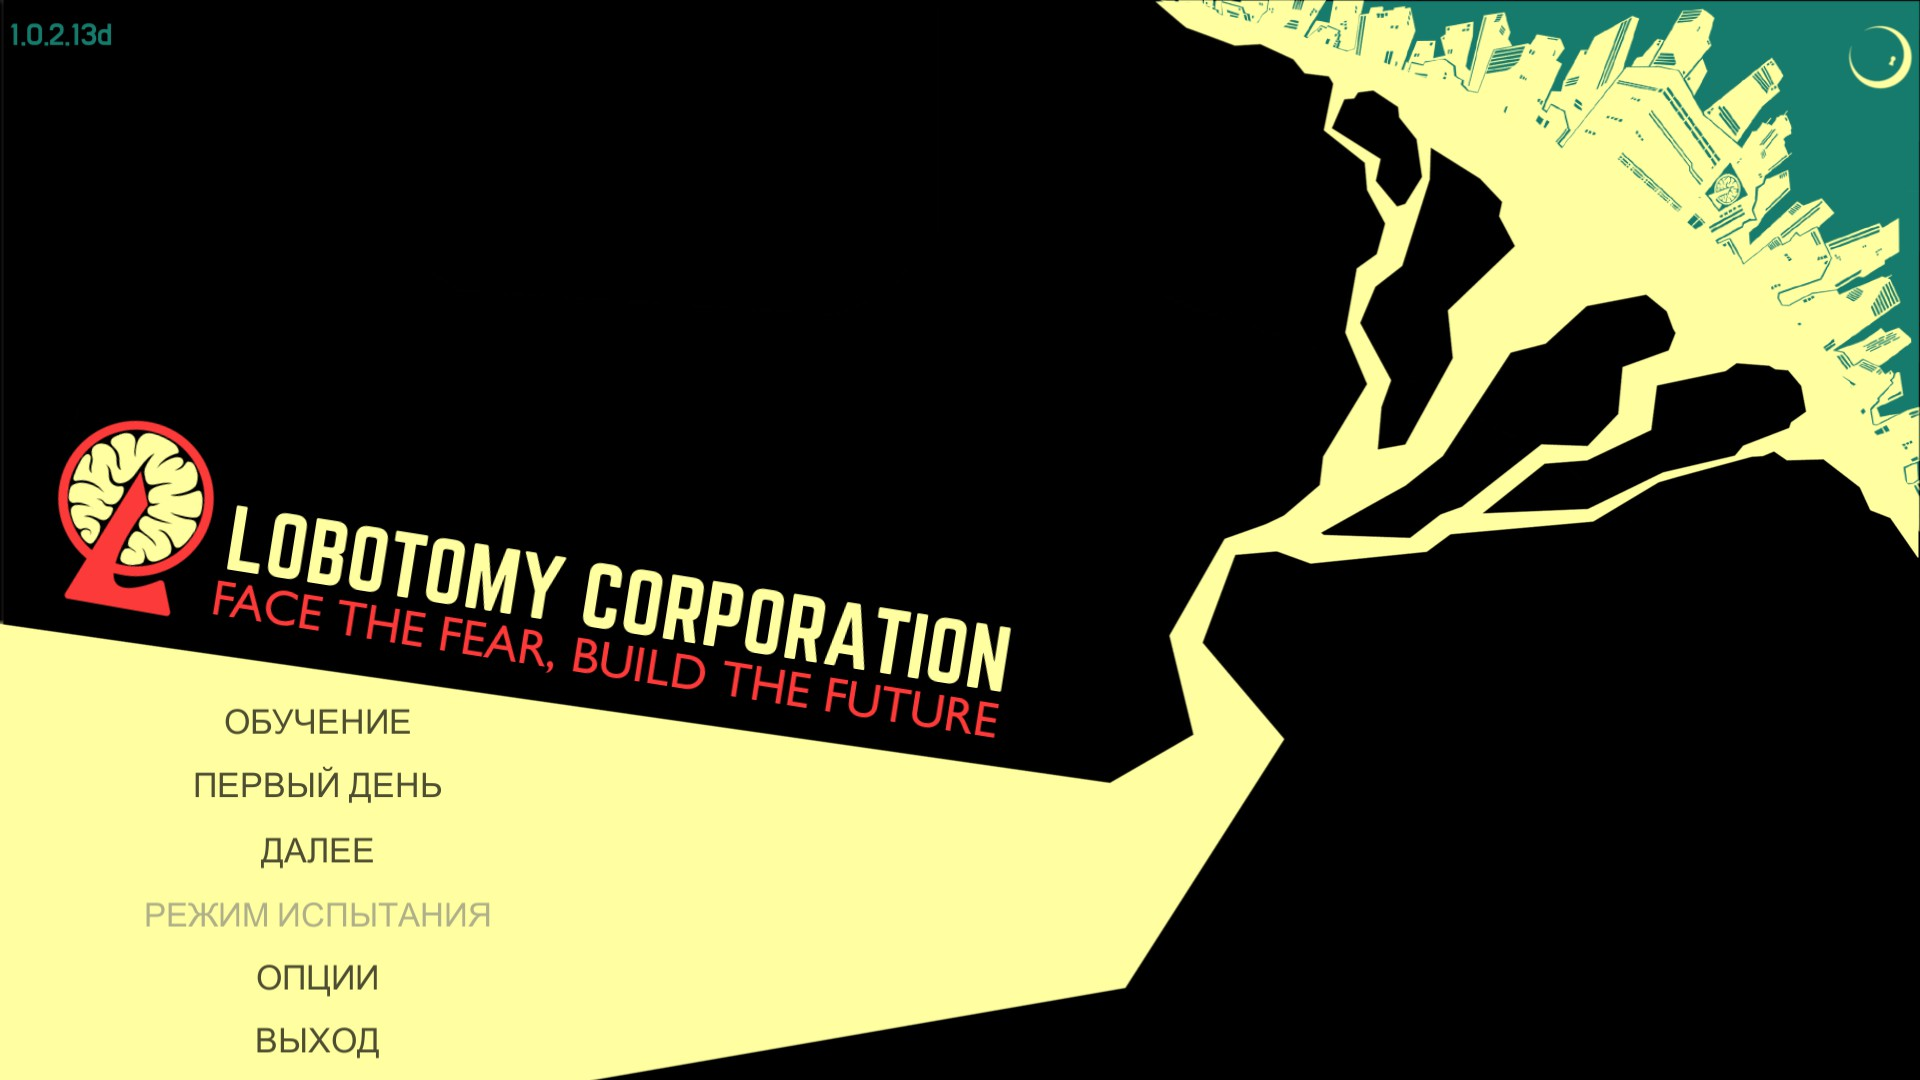 Lobotomy Corporation…